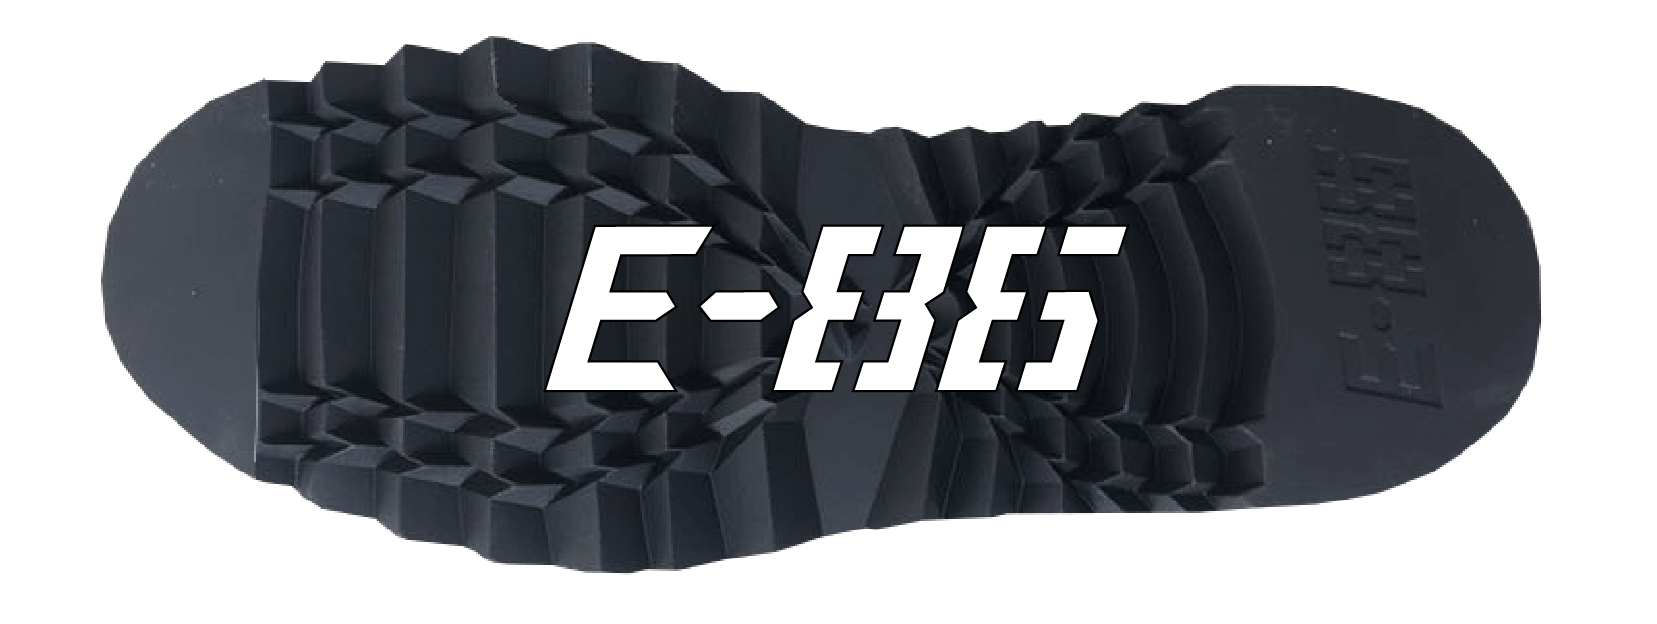 Ben Harkham's logo E-86 on shoe sole